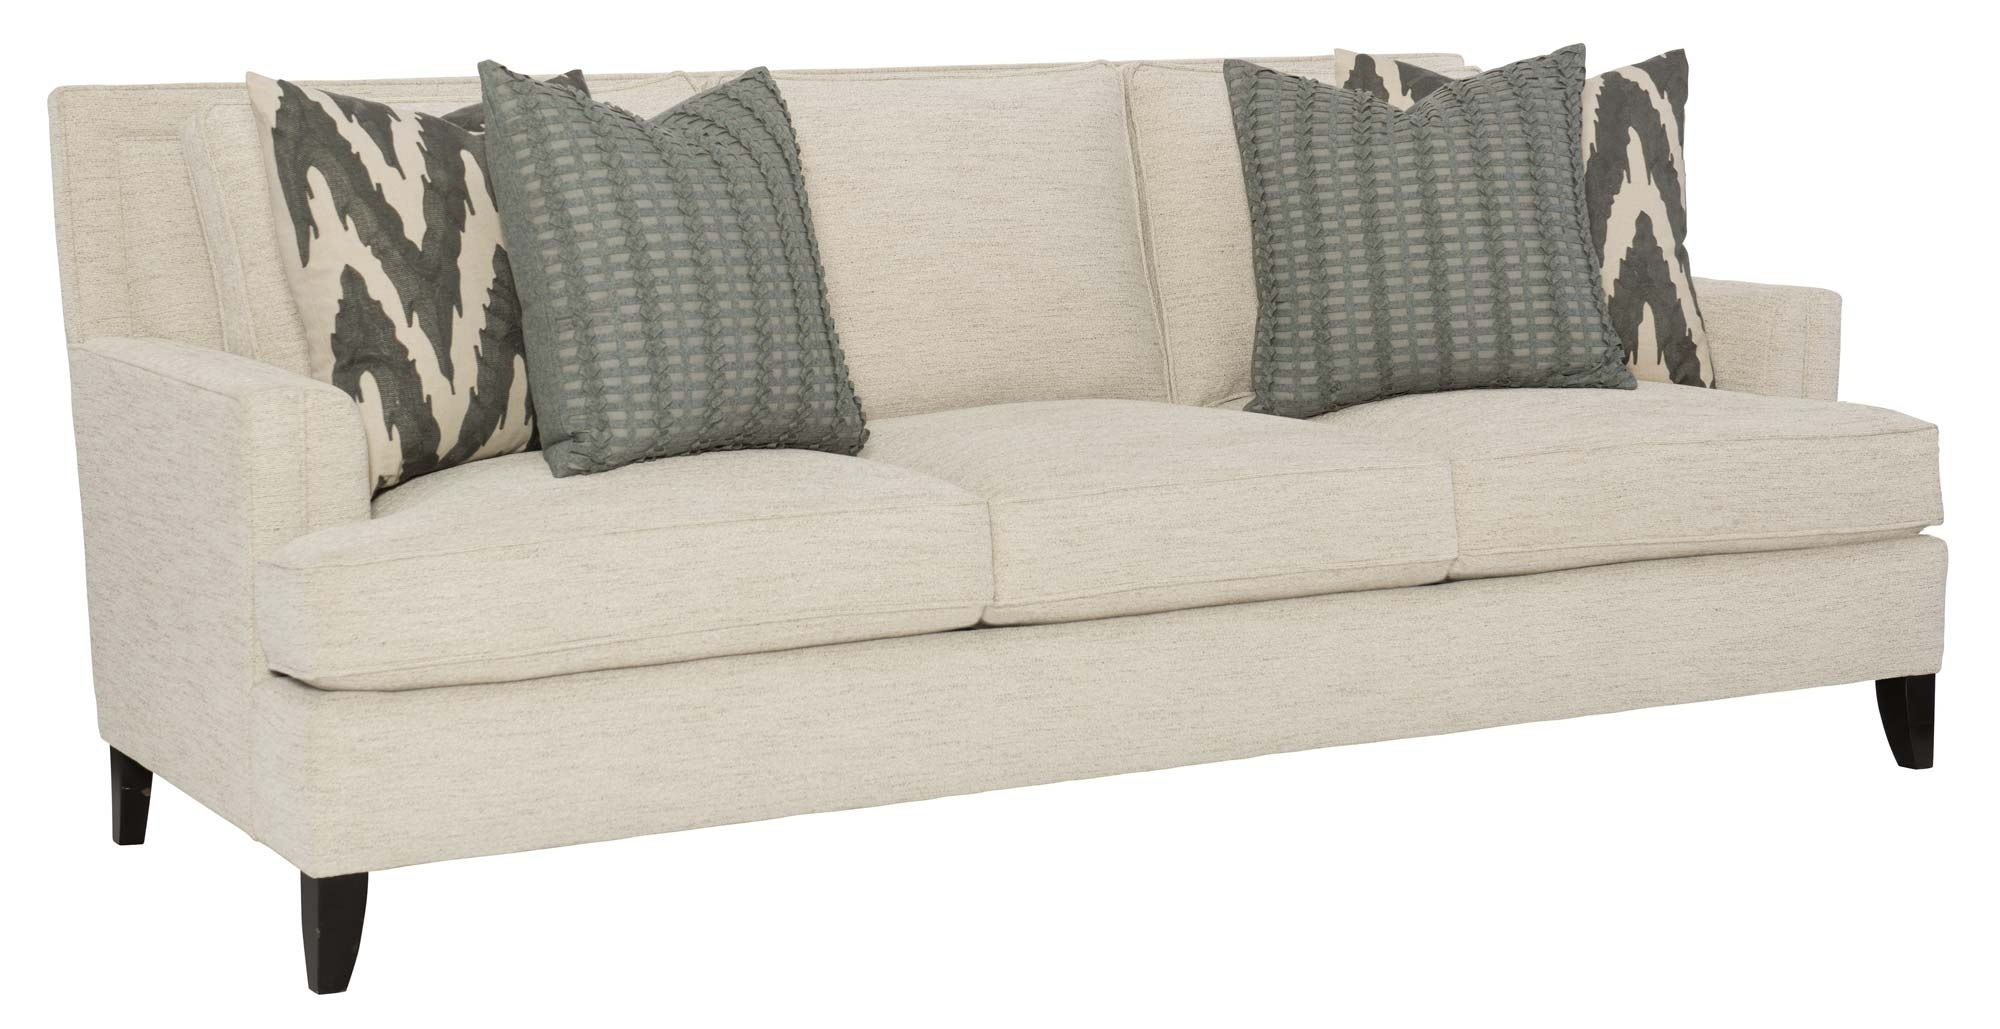 Bernhardt Furniture Addison Sofa Bernhardt Furniture B1487